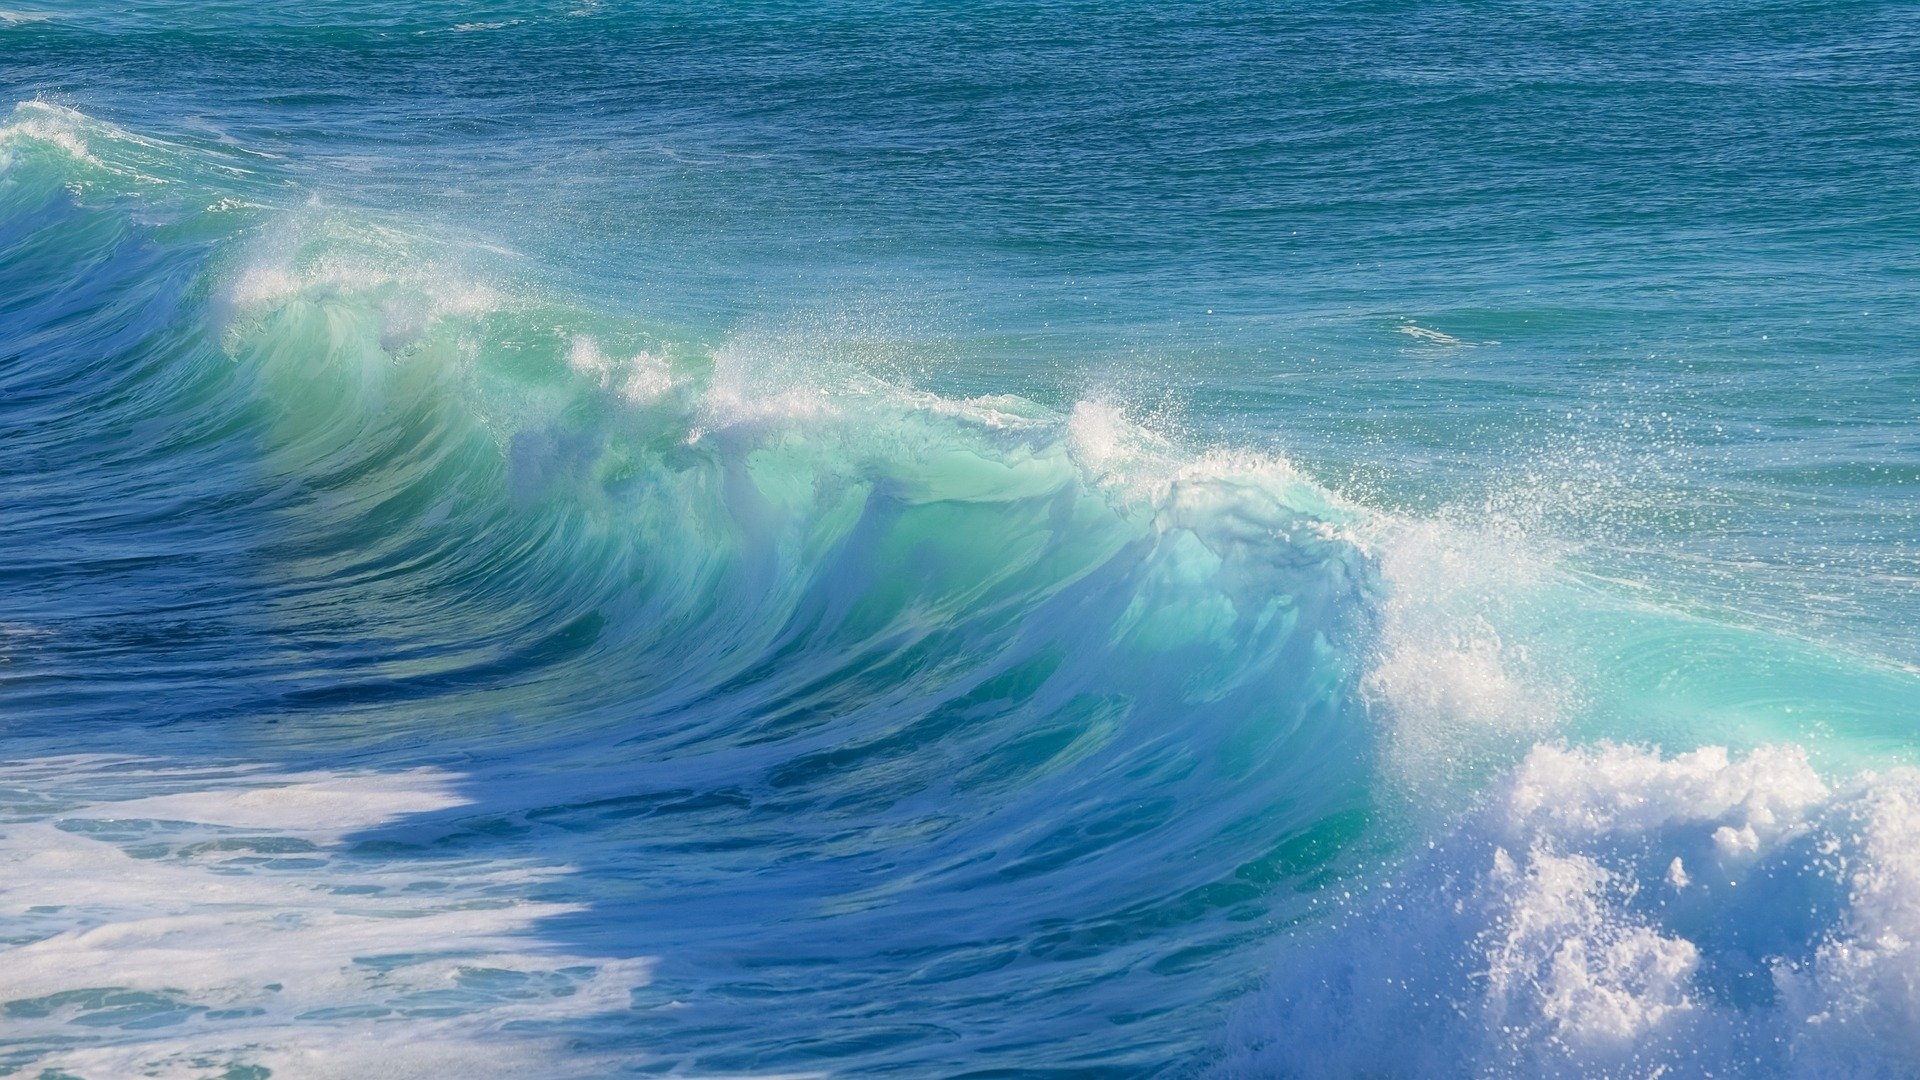 Blue, green and white waves curling up to break